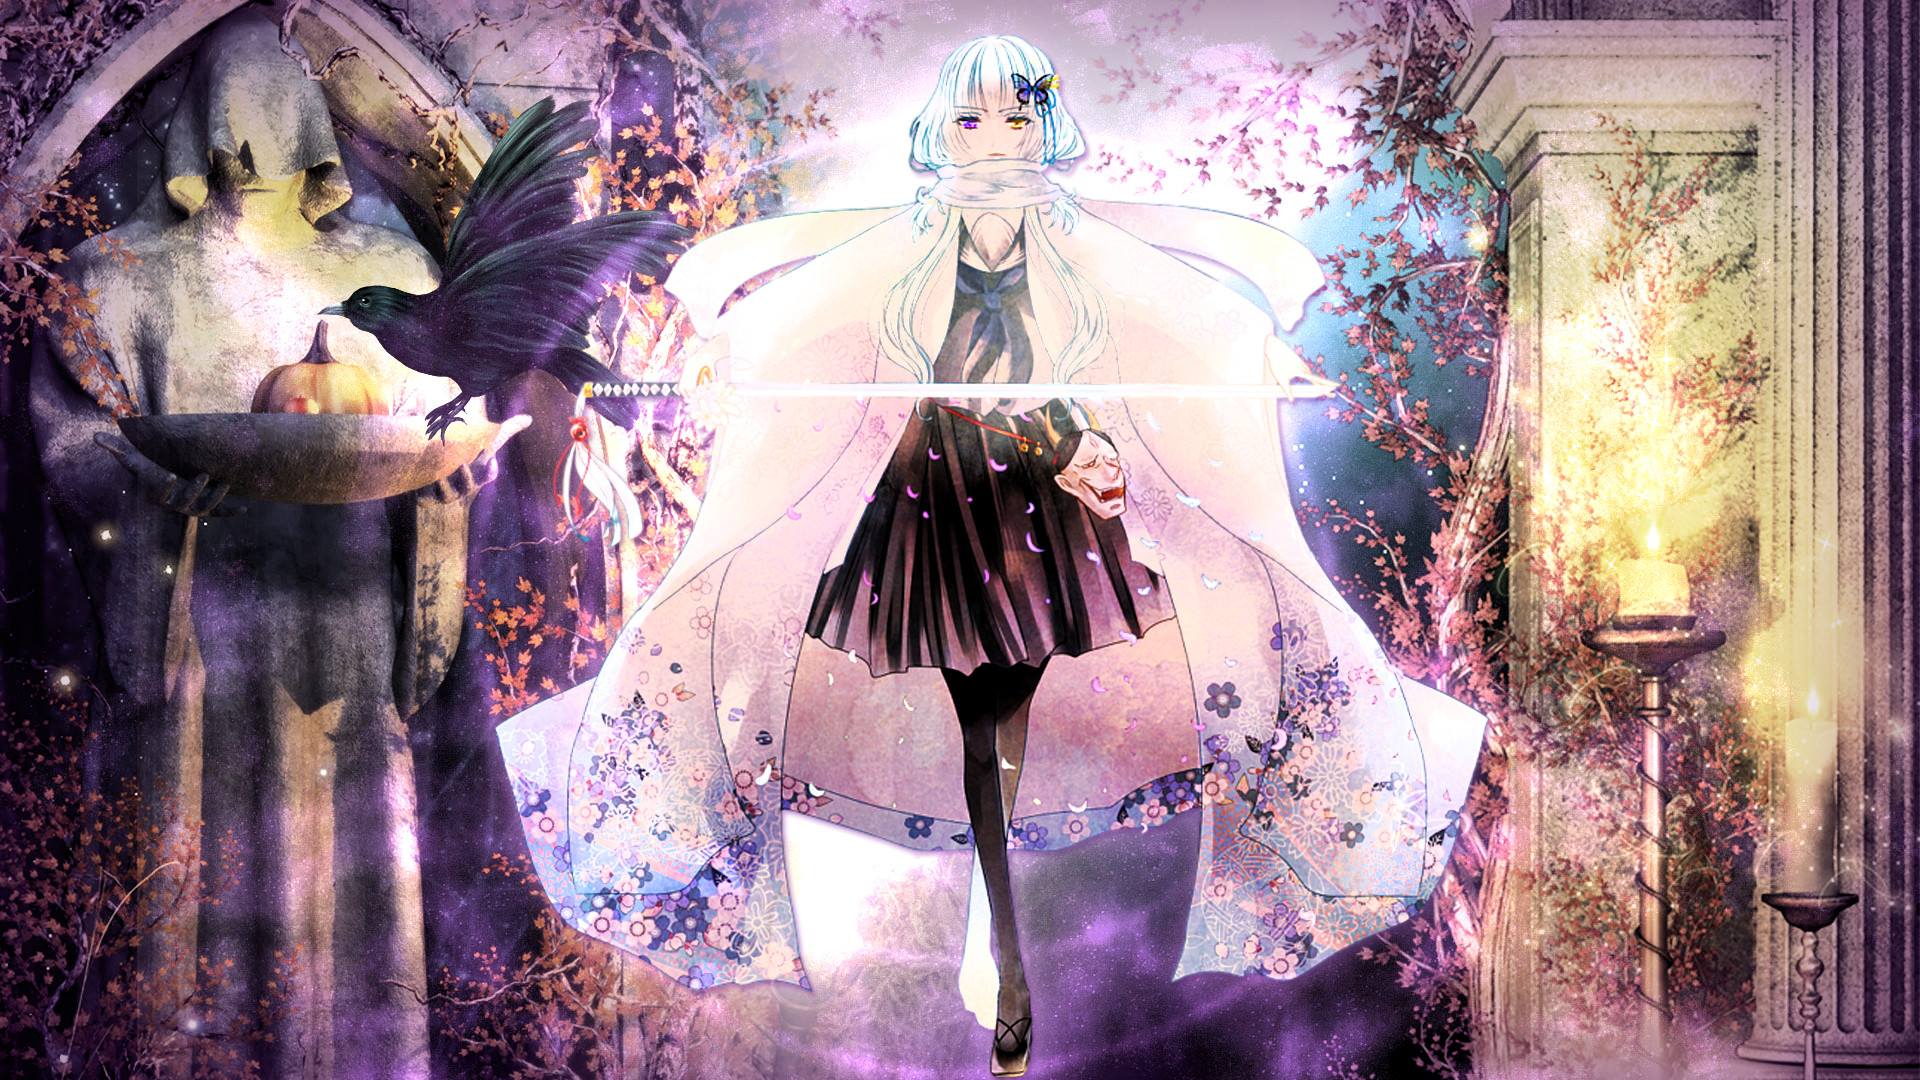 Anime Wallpapers For PC Wallpapers) – HD Wallpapers